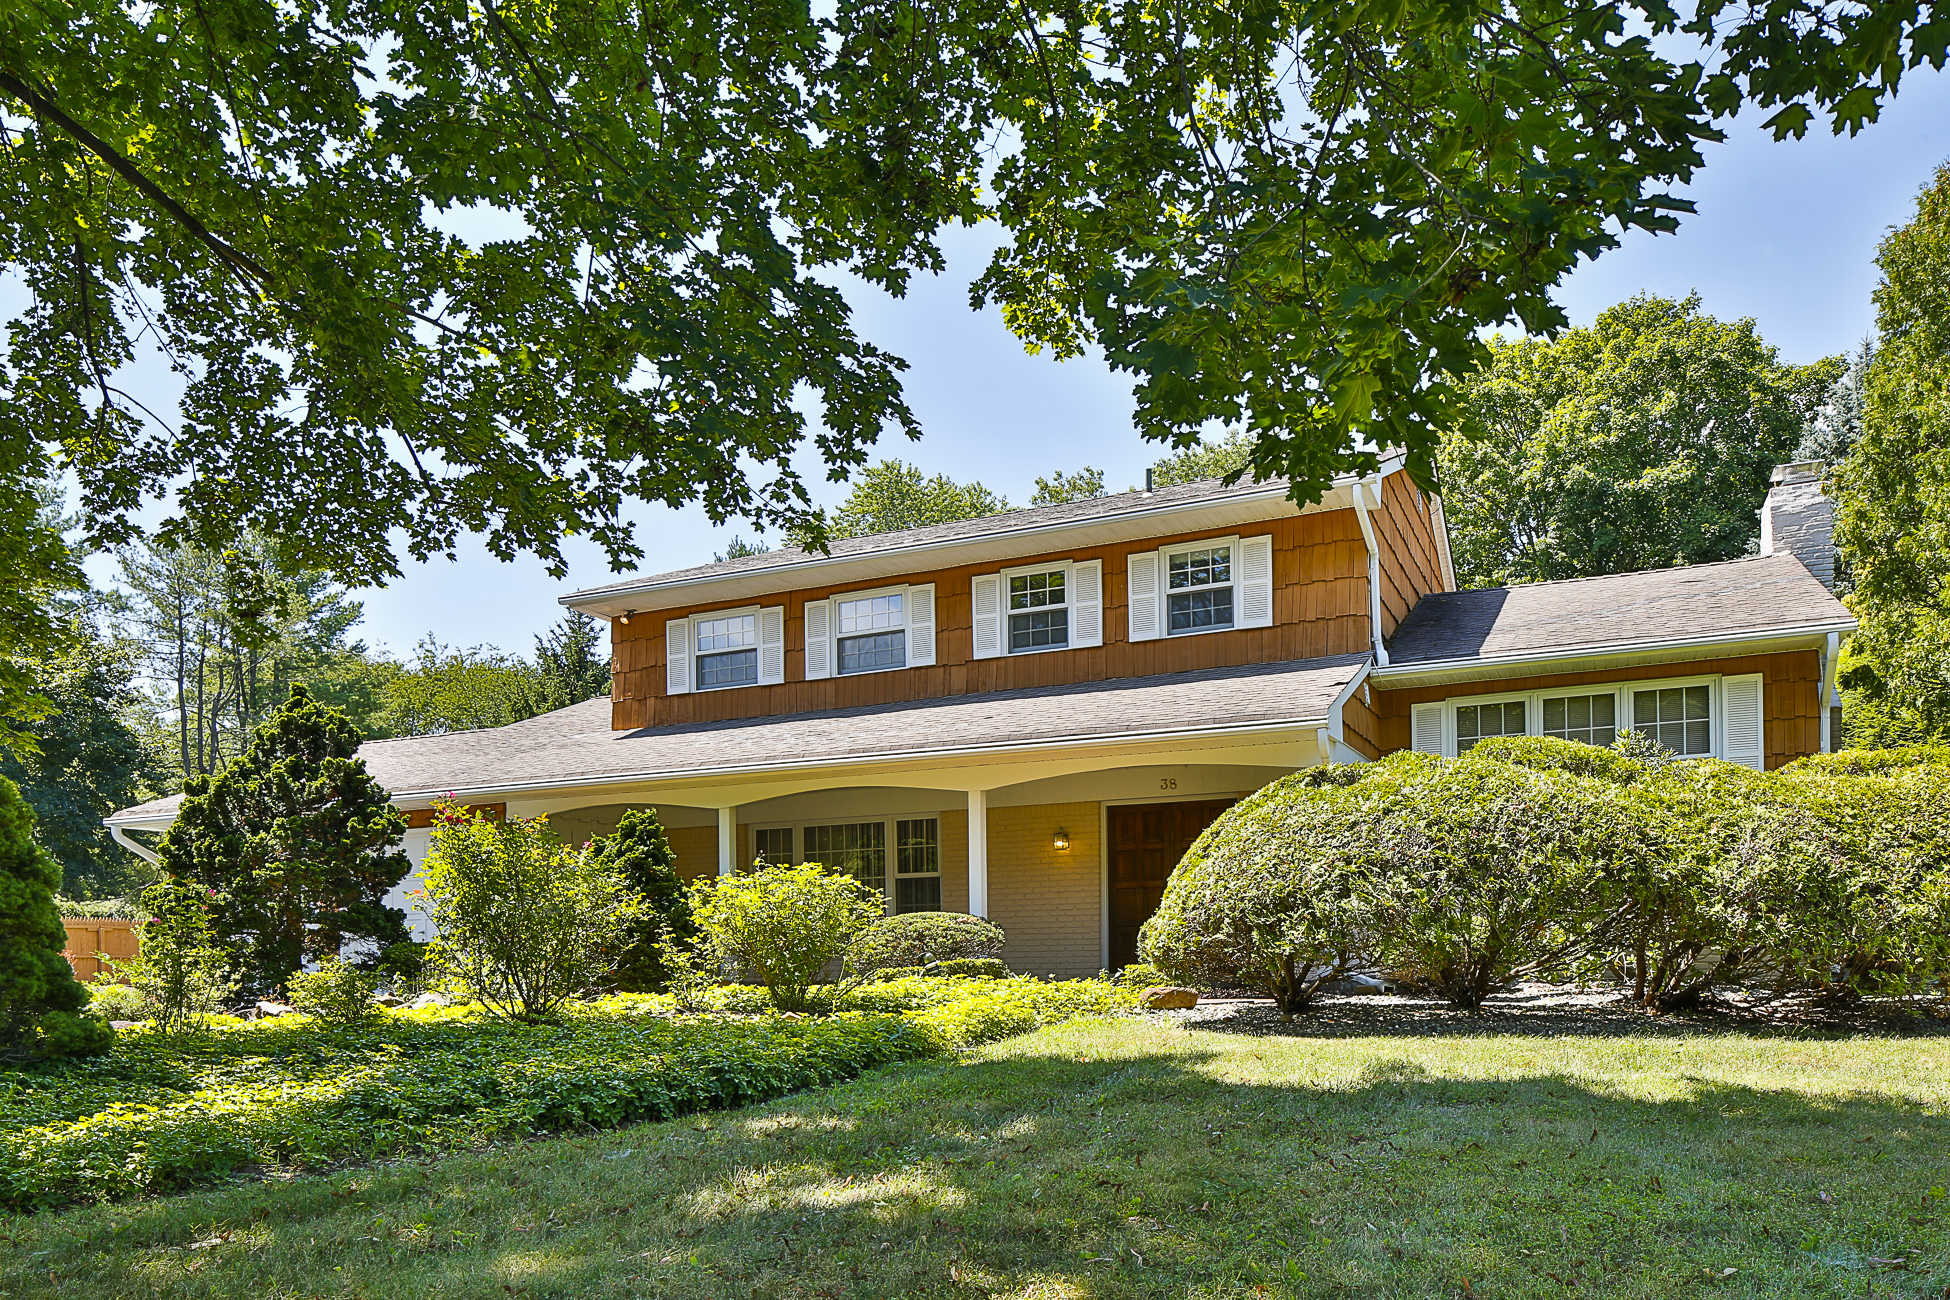 Single Family Home for Sale at Princeton Ivy Estates Colonial - West Windsor Township 38 Windsor Drive West Windsor, New Jersey 08550 United States